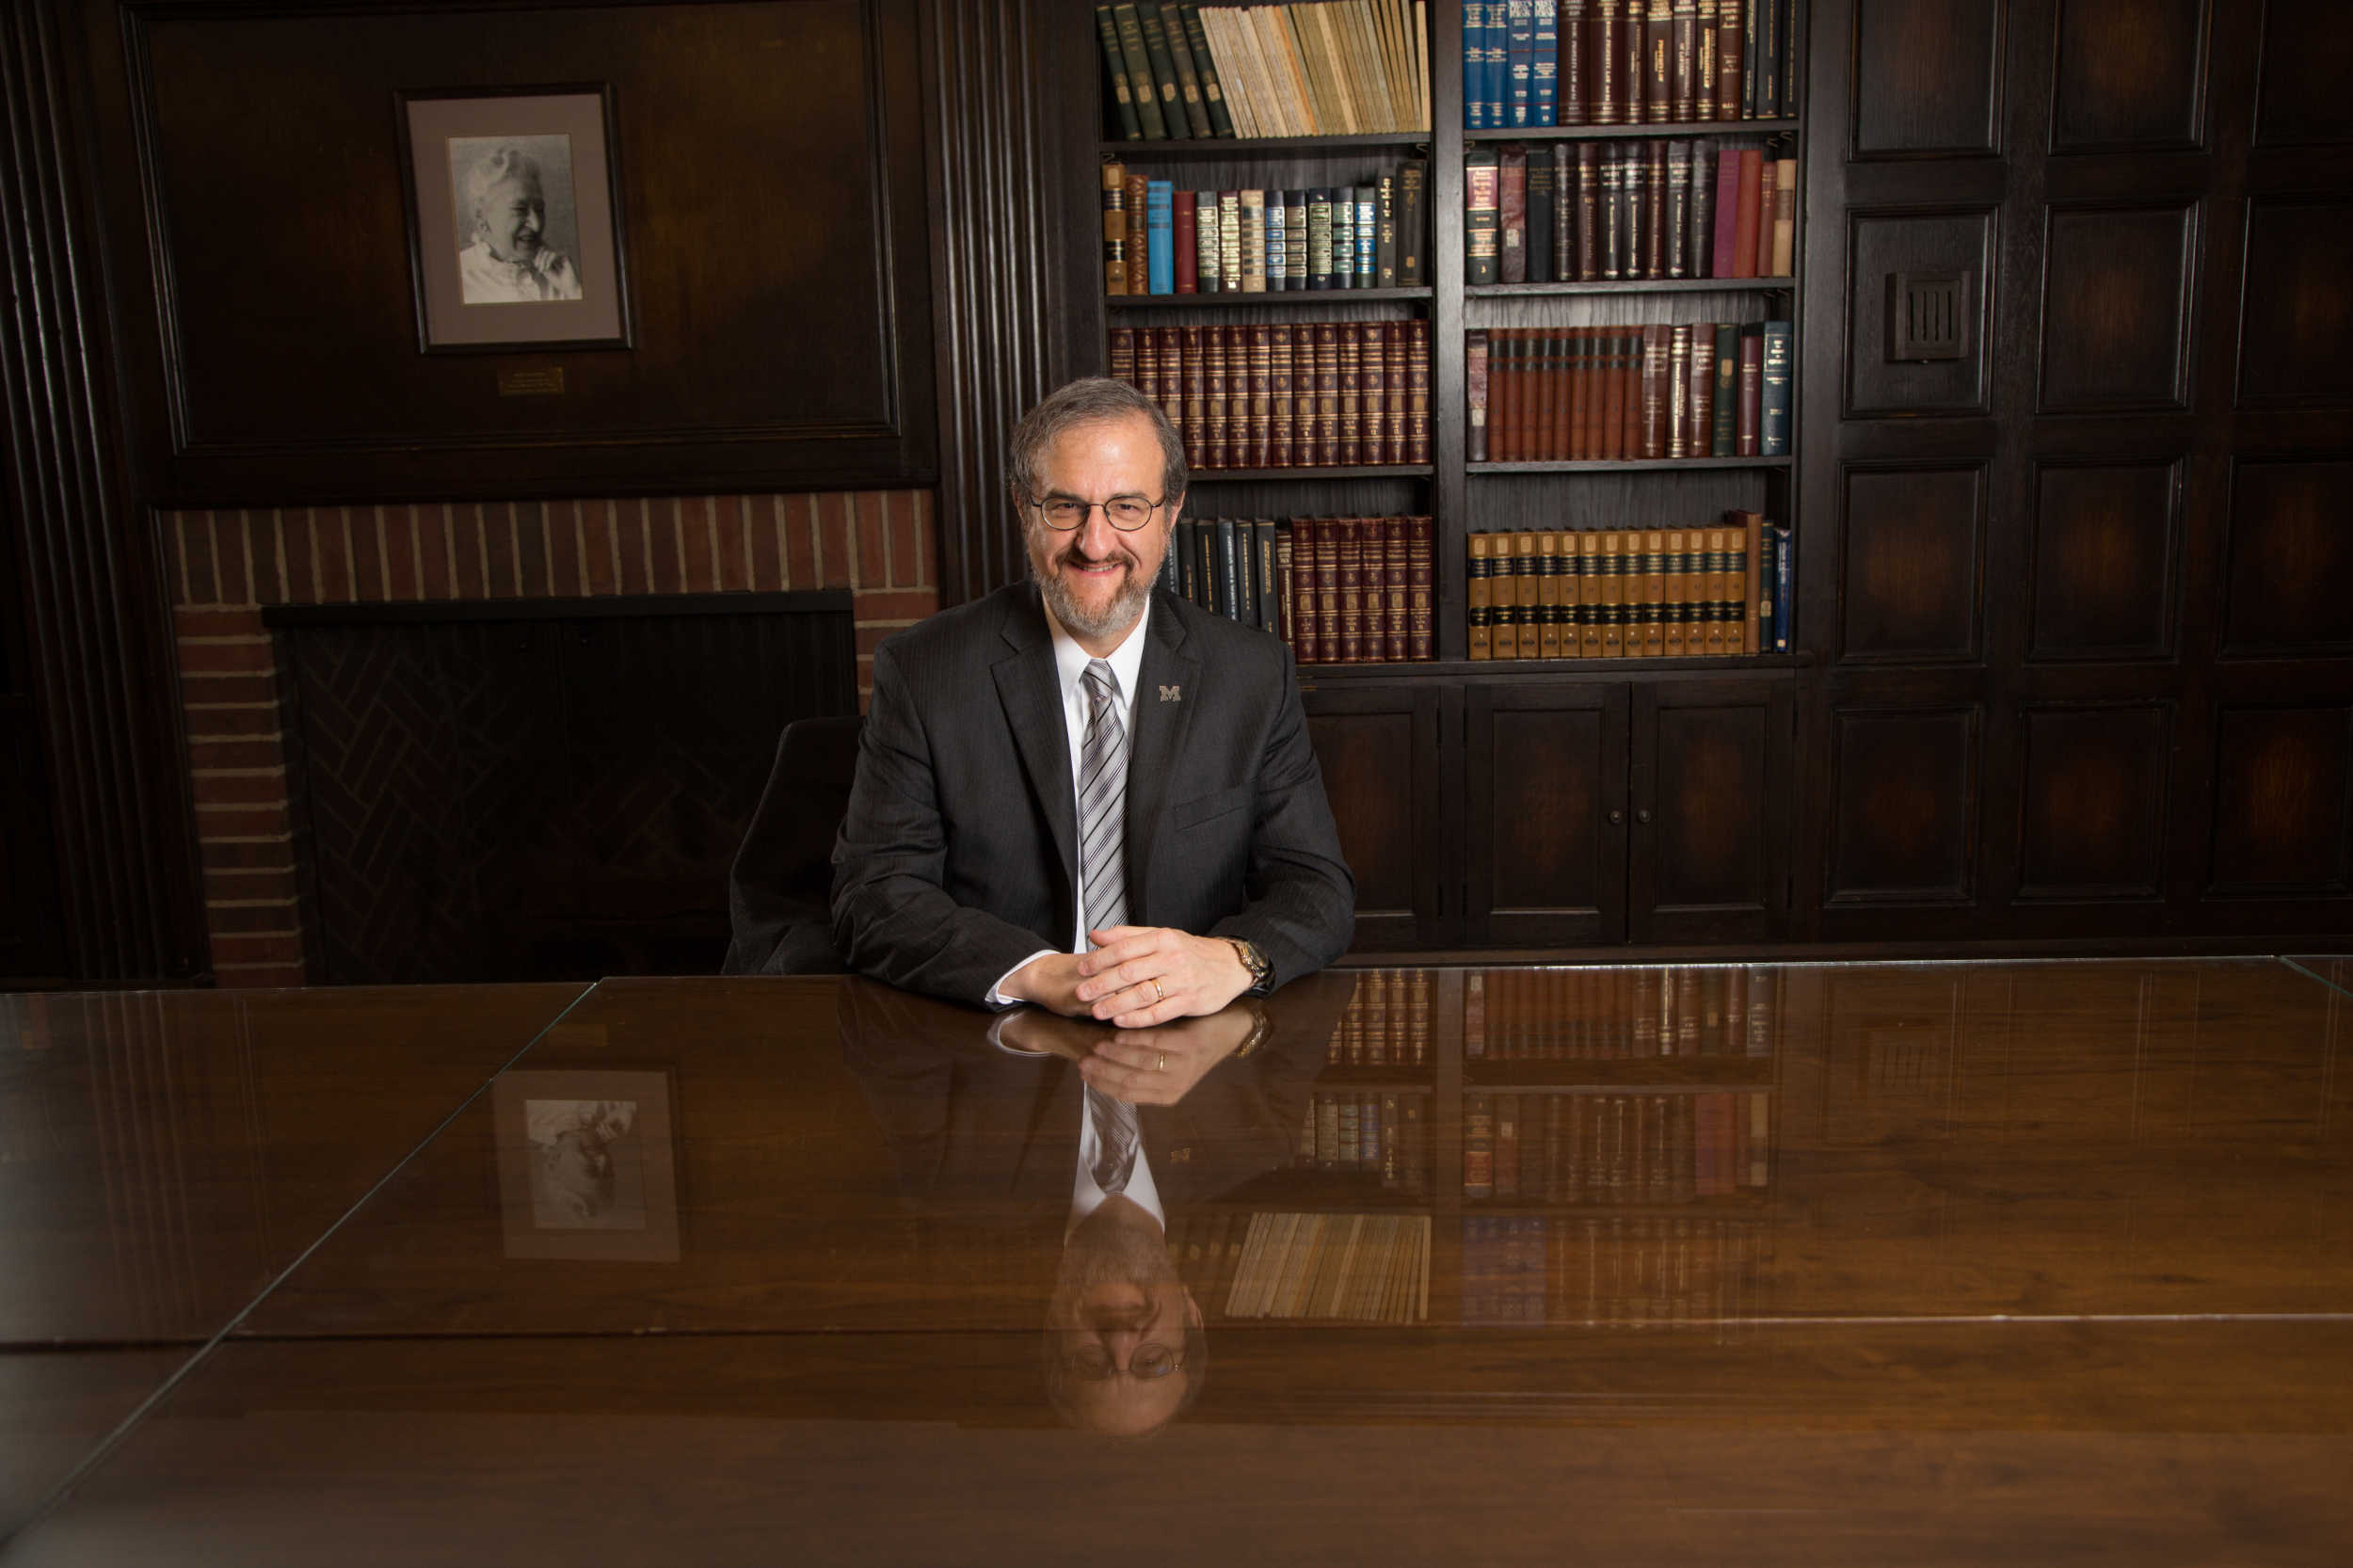 Mark S. Schlissel, 14th president of the University of Michigan